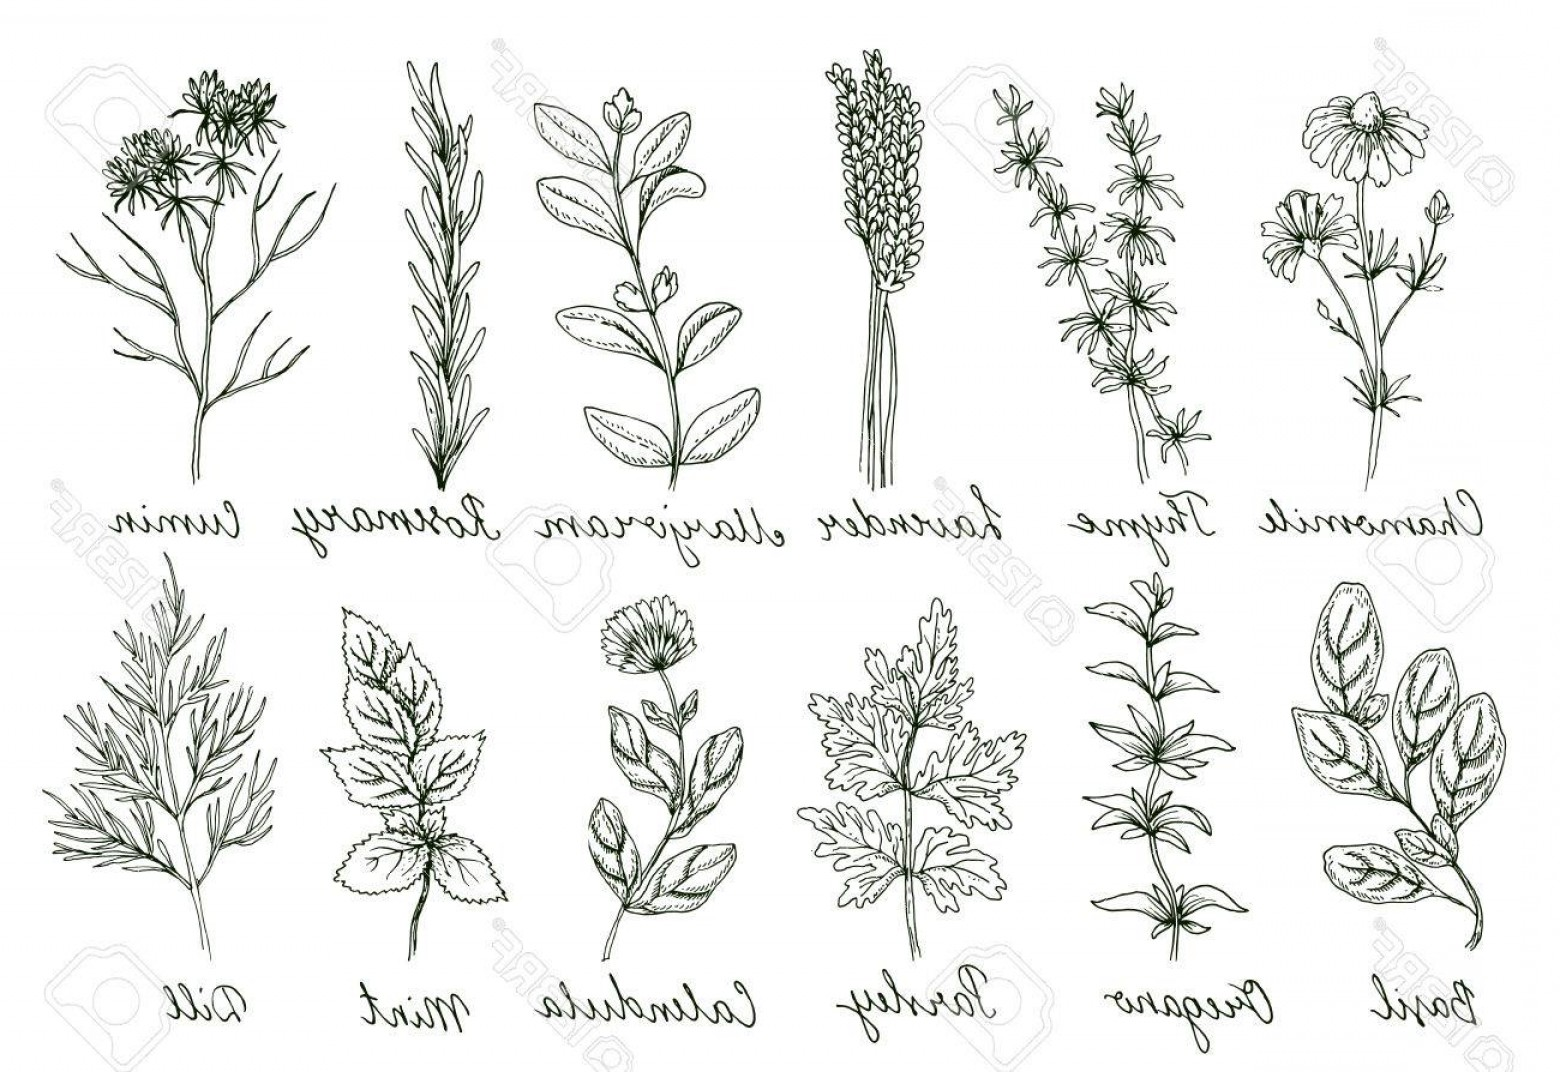 Botanical Flower Vectors: Photostock Vector Herbs And Spices Set Organic Healing Wild Flowers Vector Botanical Illustrations Doodle Floral Sketc